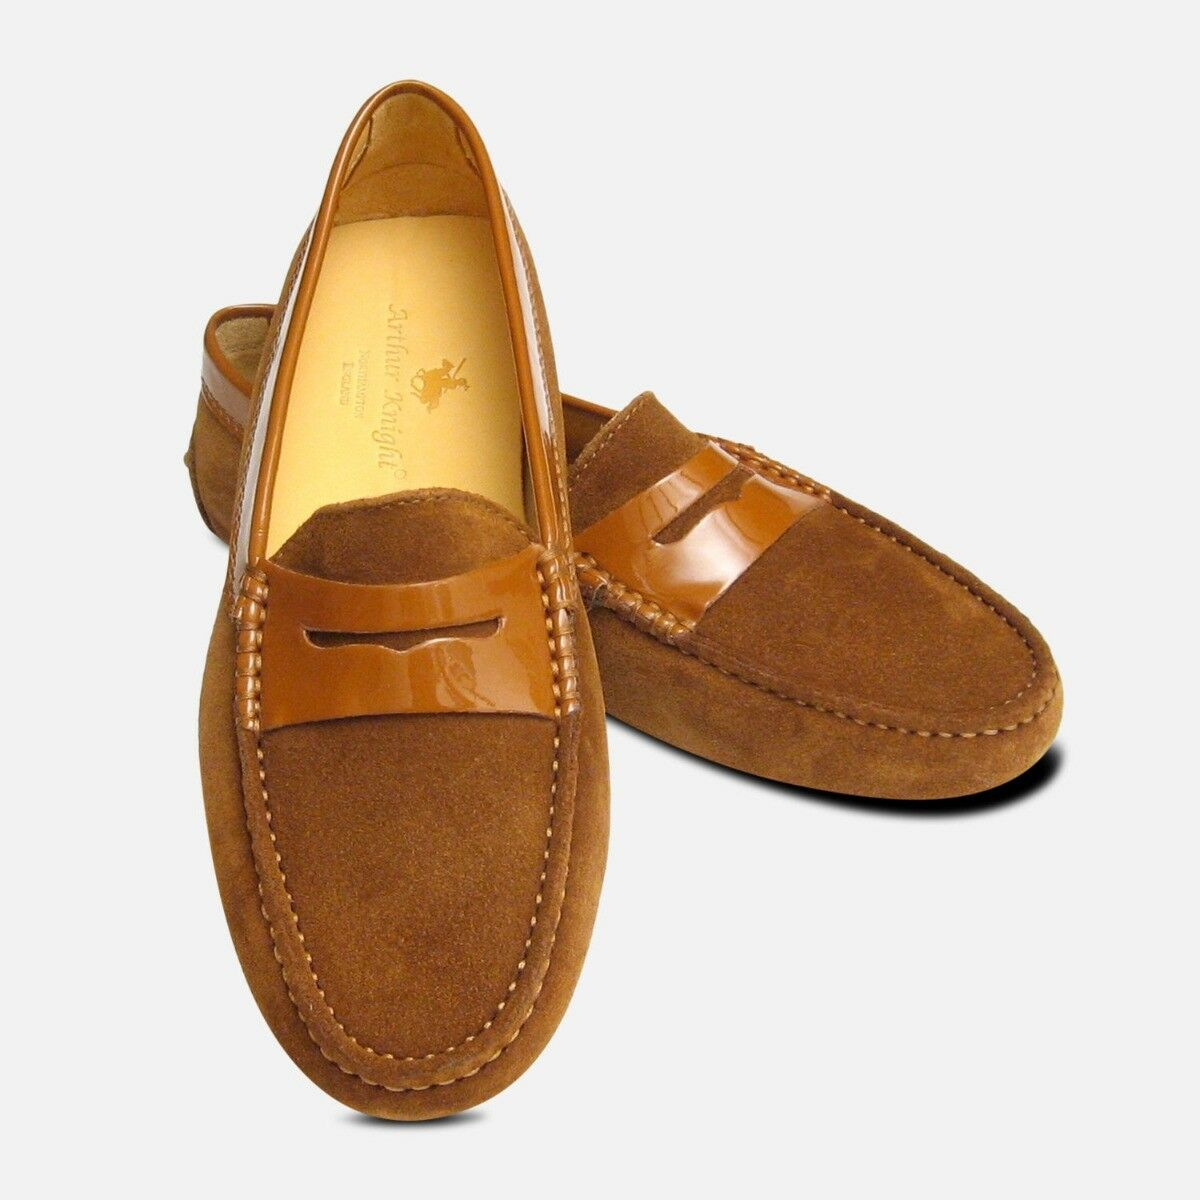 Brown suede & patent Arthur knight women's italian driving shoes